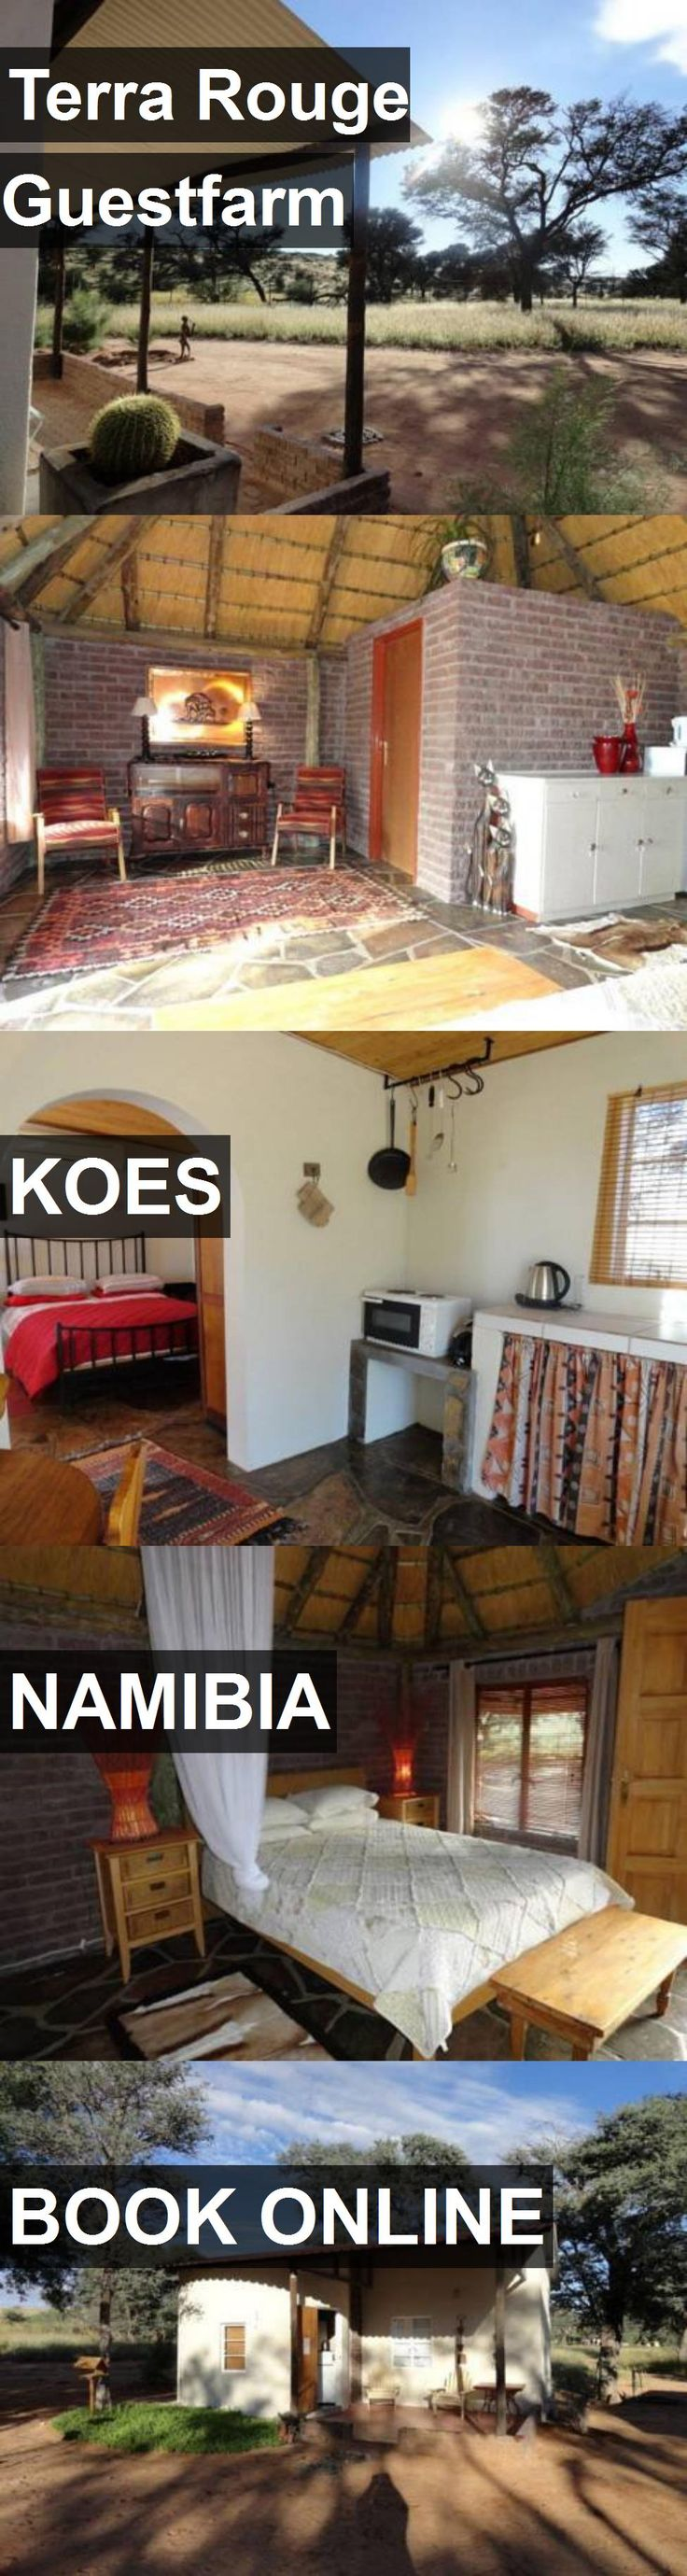 Hotel Terra Rouge Guestfarm in Koes, Namibia. For more information, photos, reviews and best prices please follow the link. #Namibia #Koes #travel #vacation #hotel